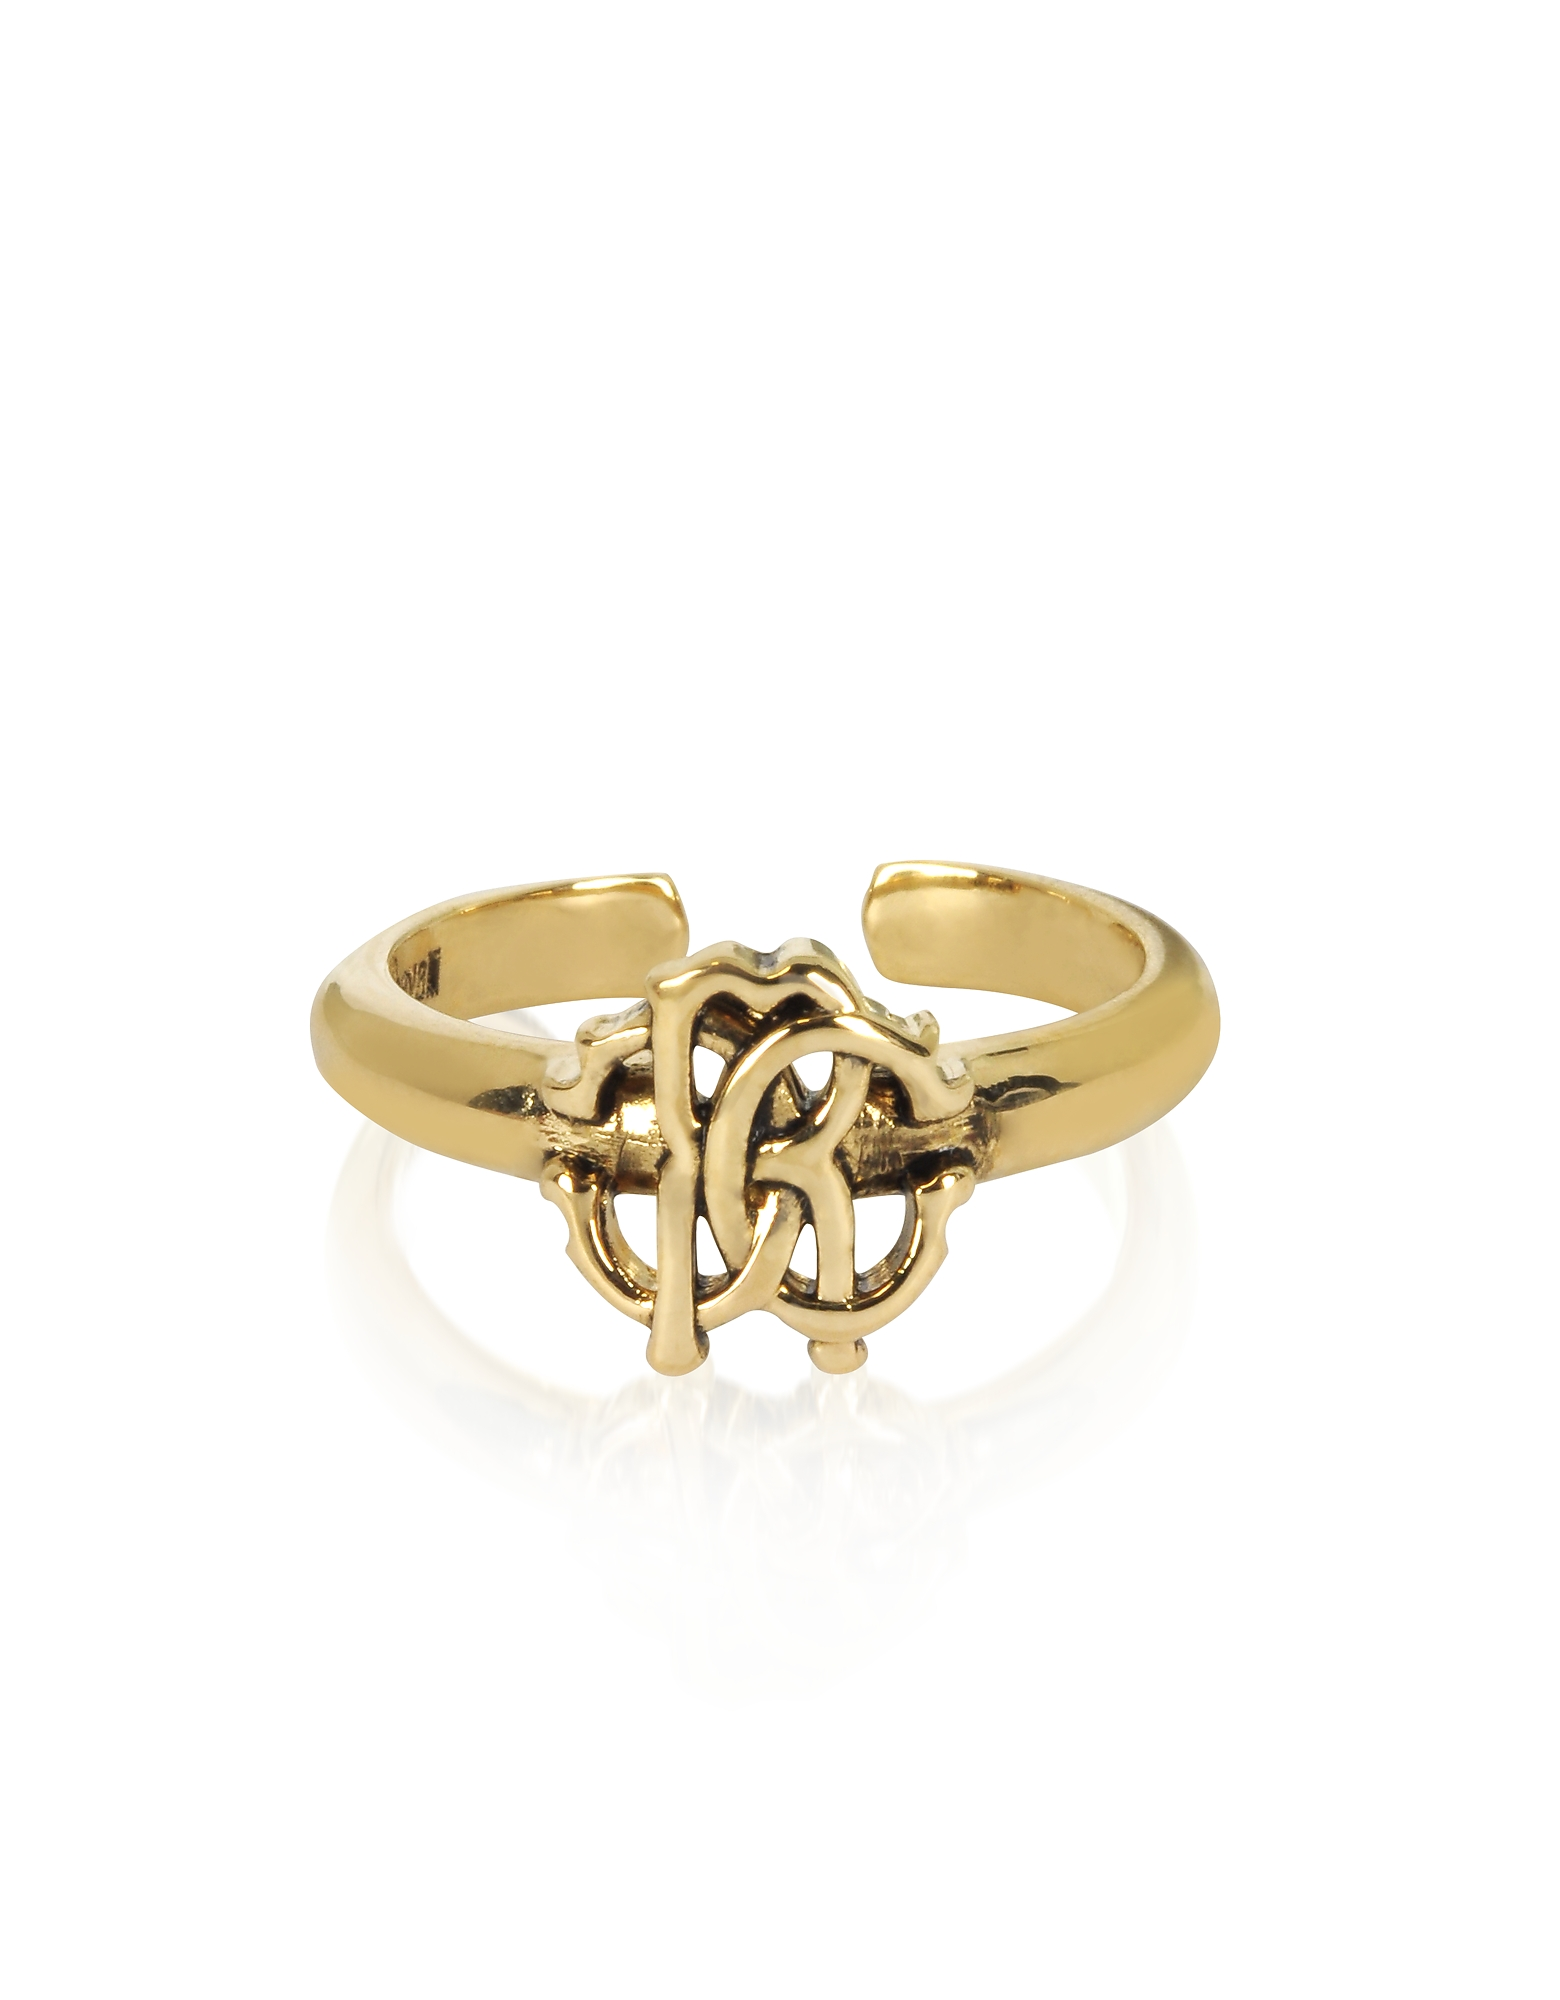 Roberto Cavalli Rings, Polished Goldtone RC Icon Ring